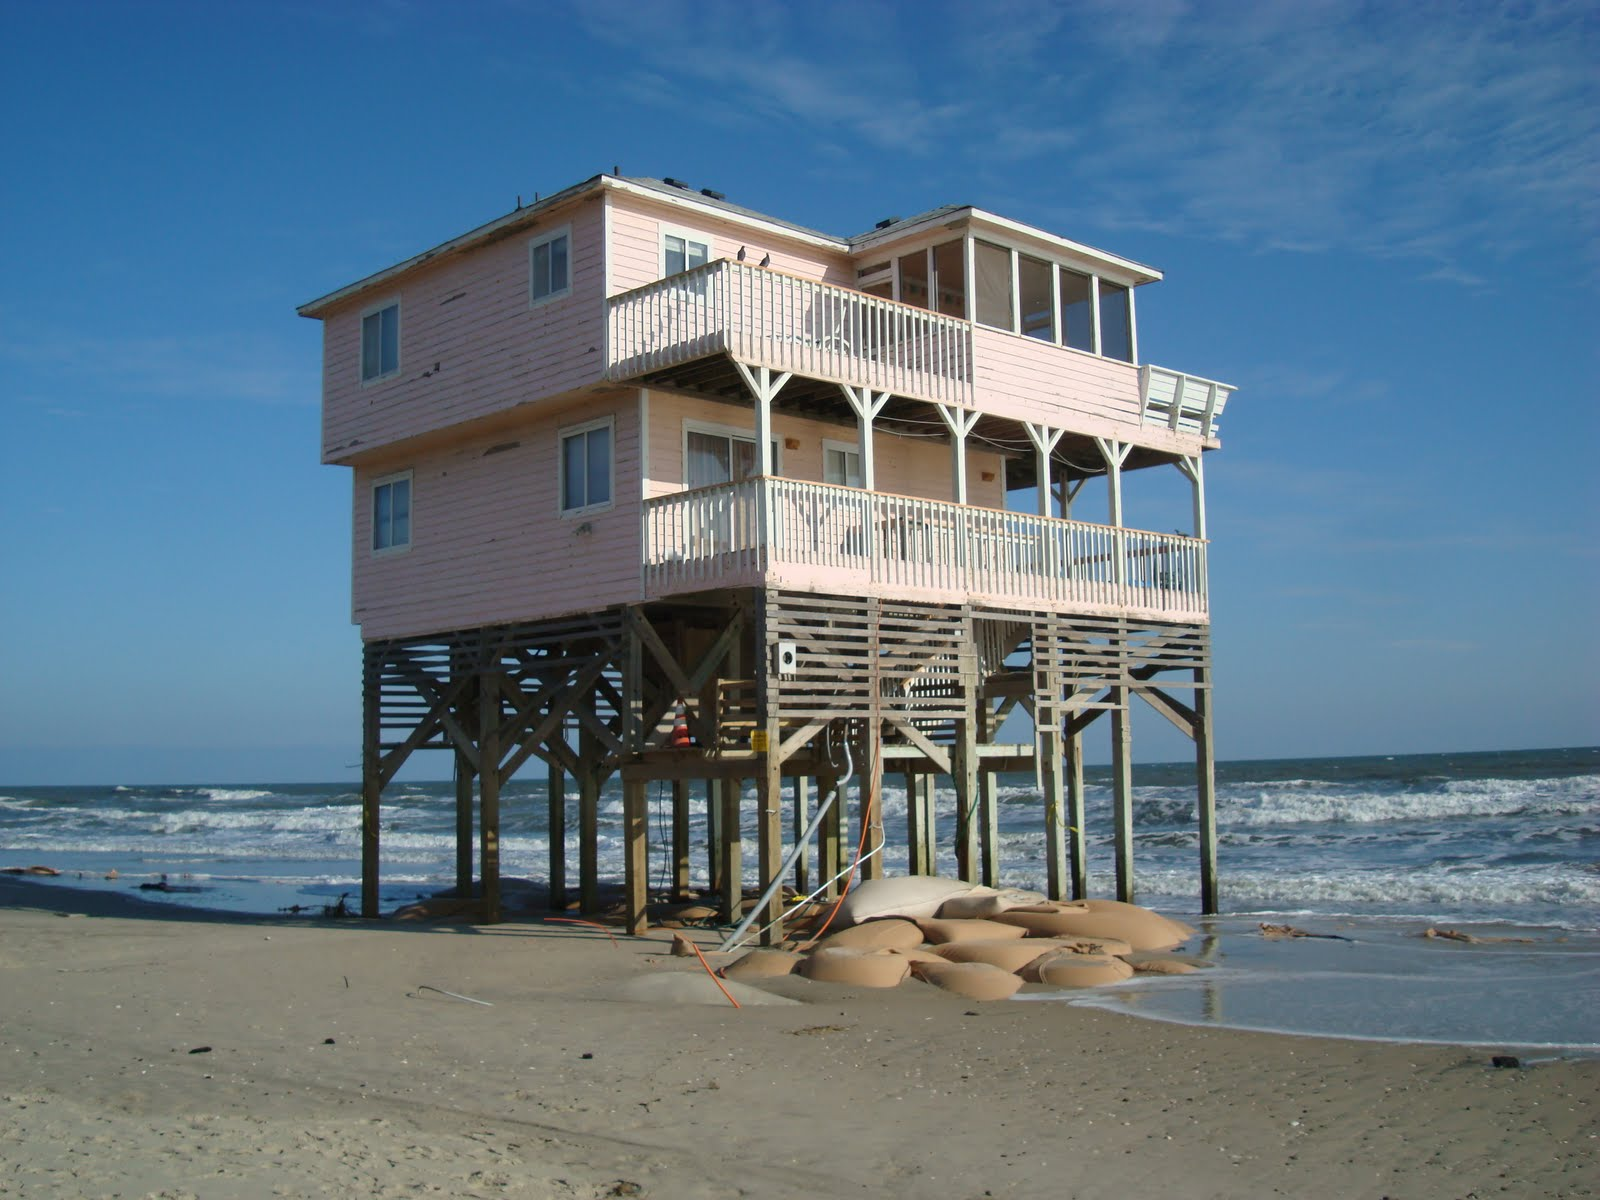 nags head bbw personals Outer banks rooms & shares - craigslist  (nags head nc) map hide this posting restore restore this posting $725 favorite this post aug 13 roommate wanted .